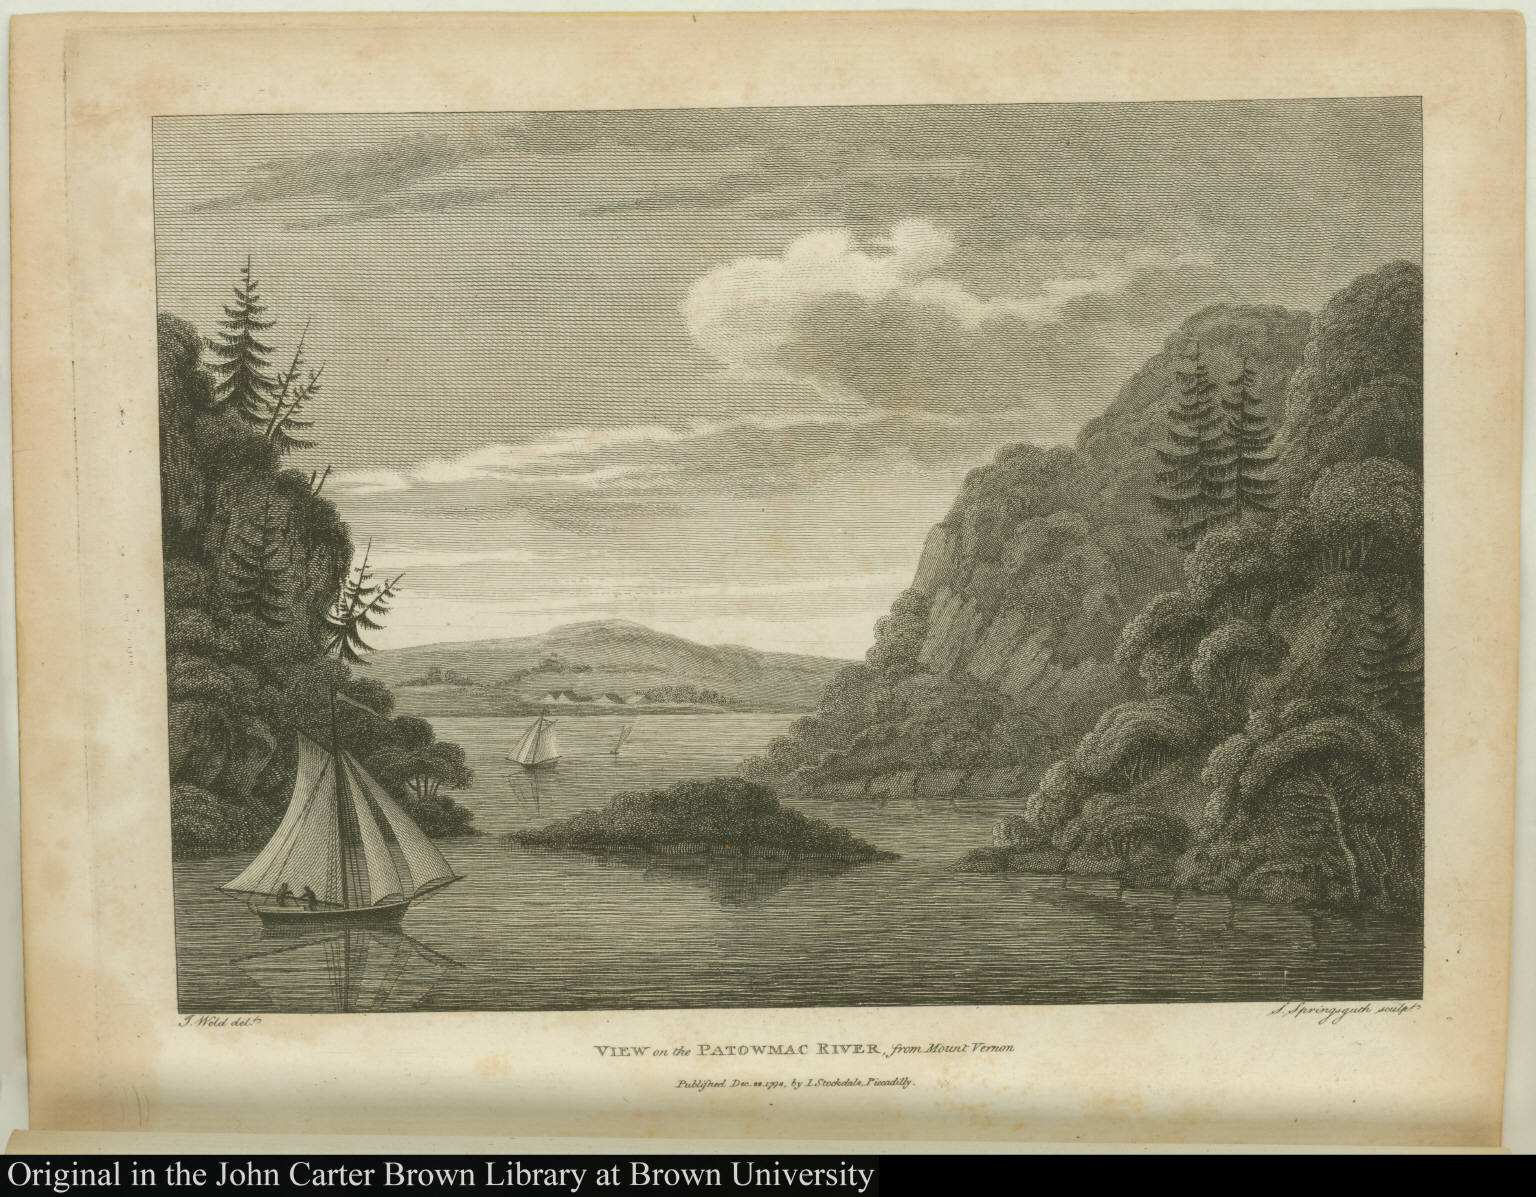 View on the Patowmac River, from Mount Vernon